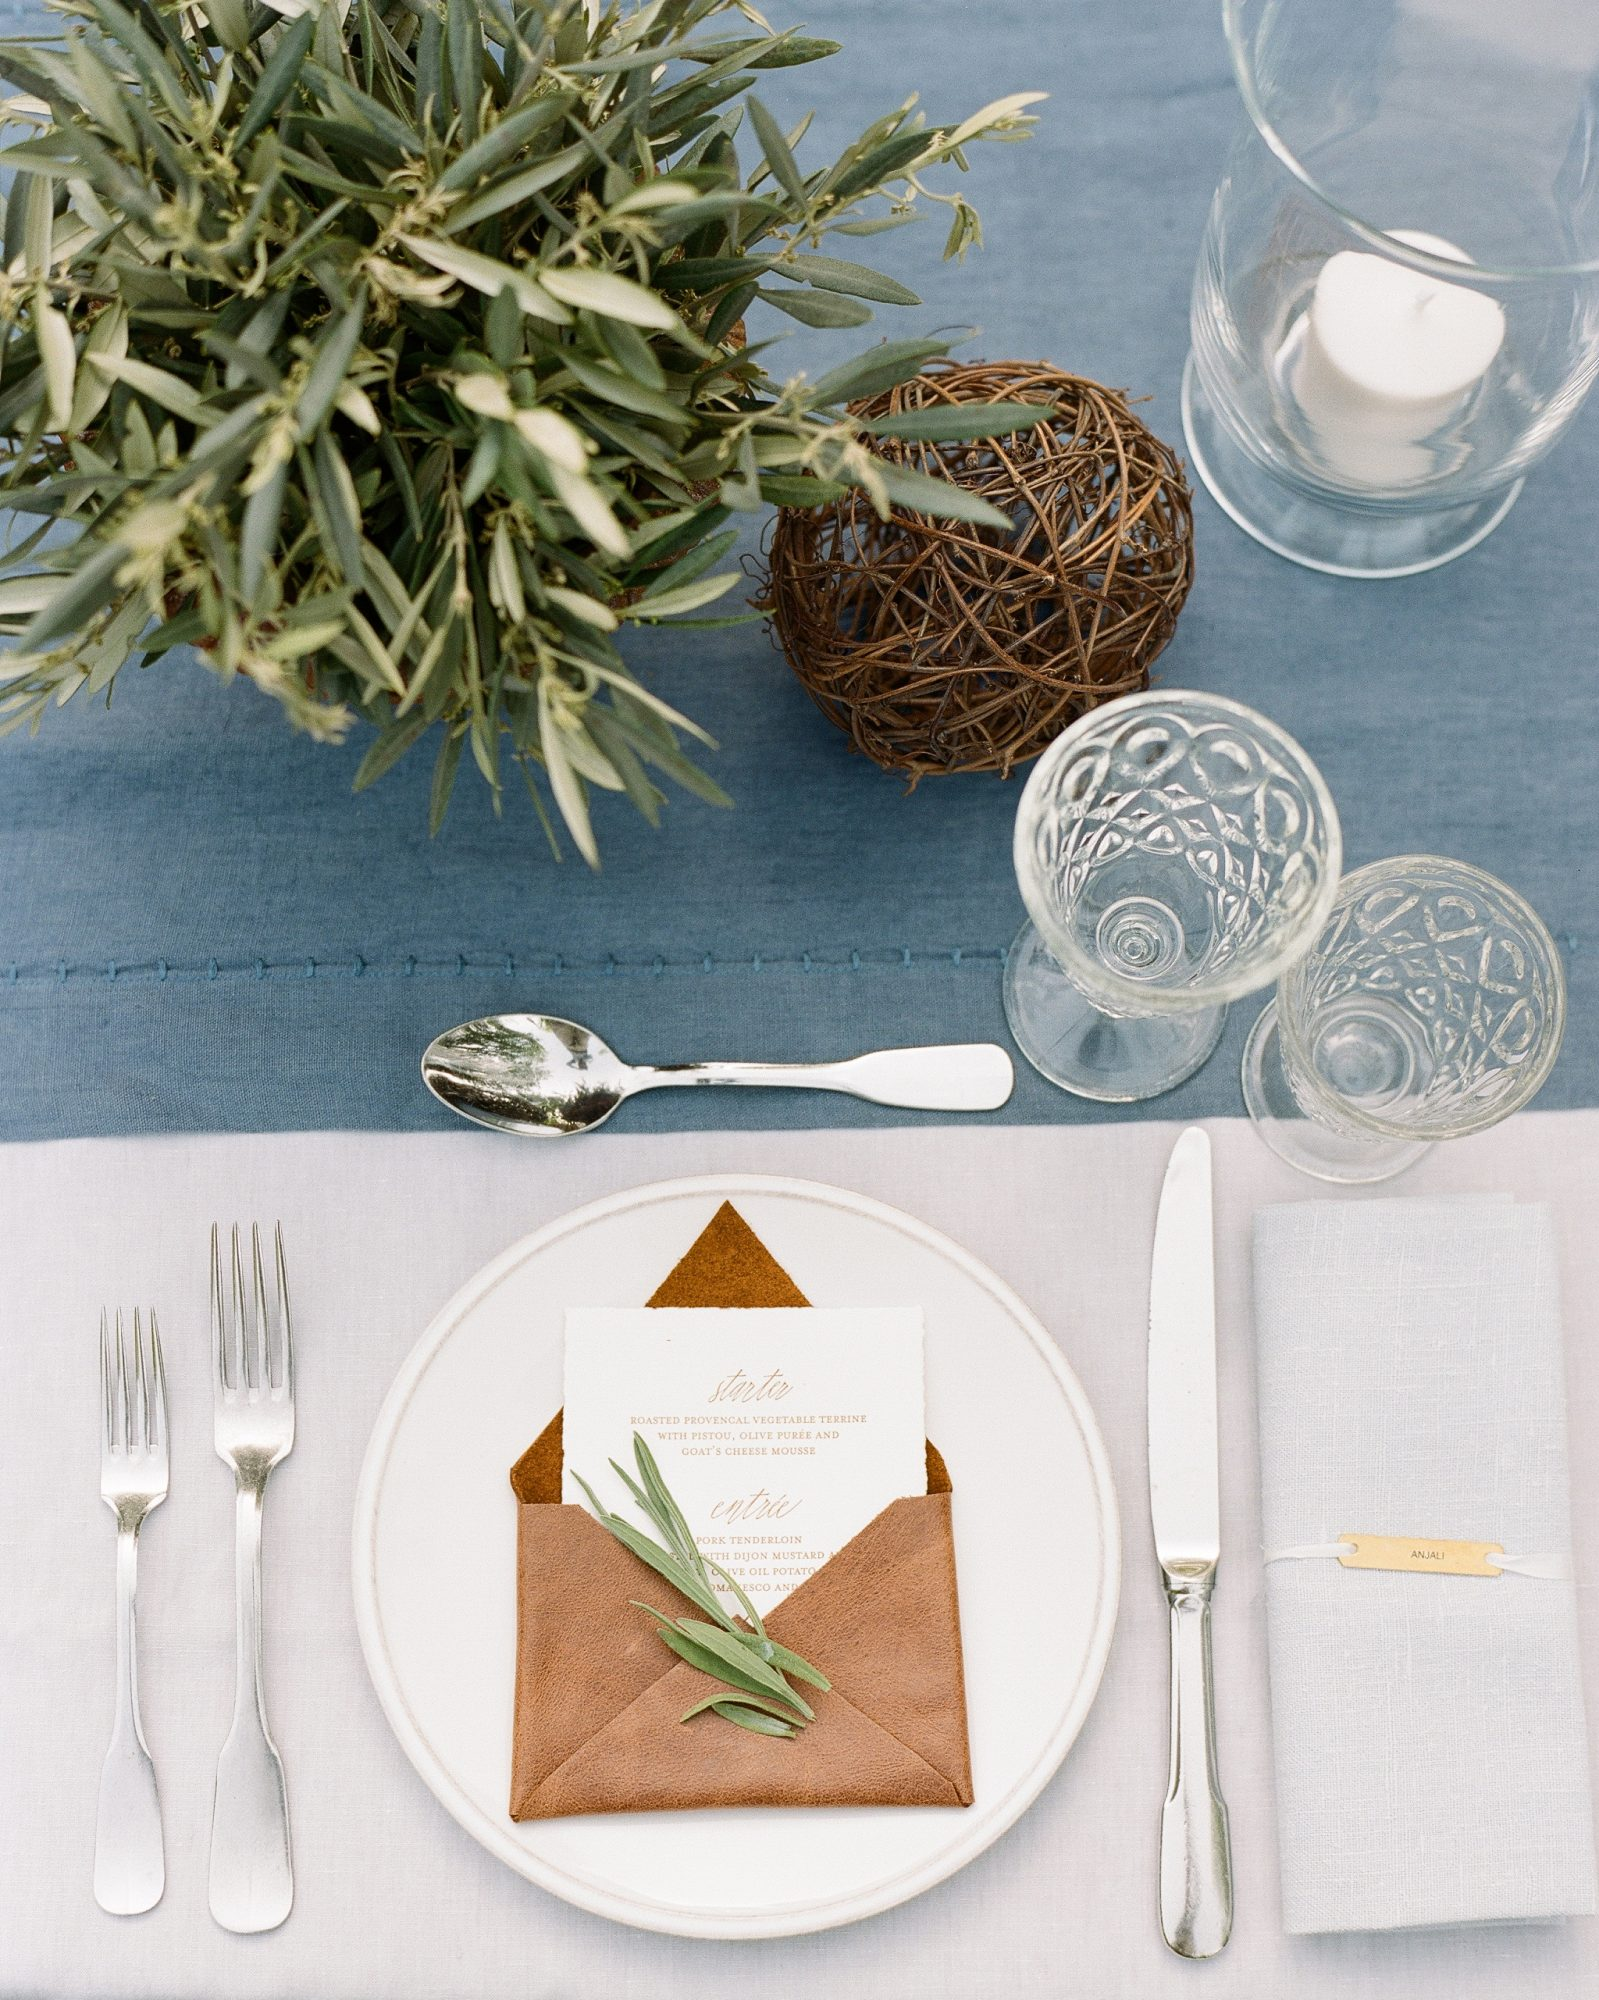 julie-chris-rehearsal-placesetting-0145-s12649-0216.jpg